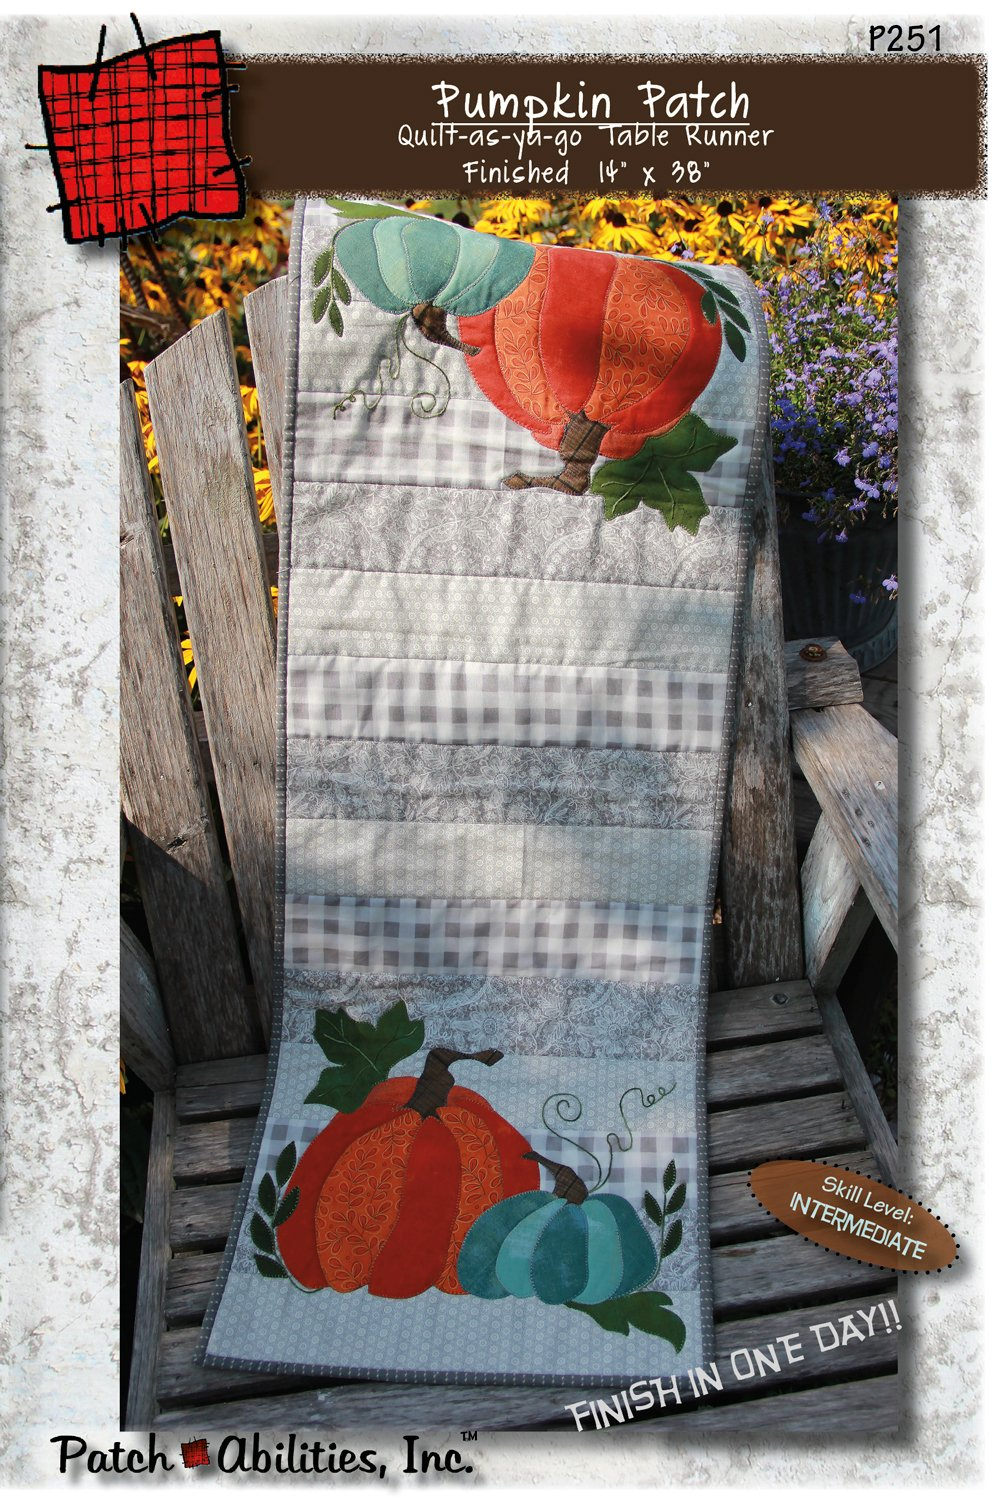 P251 Pumpkin Patch DIGITAL DOWNLOAD PATTERN